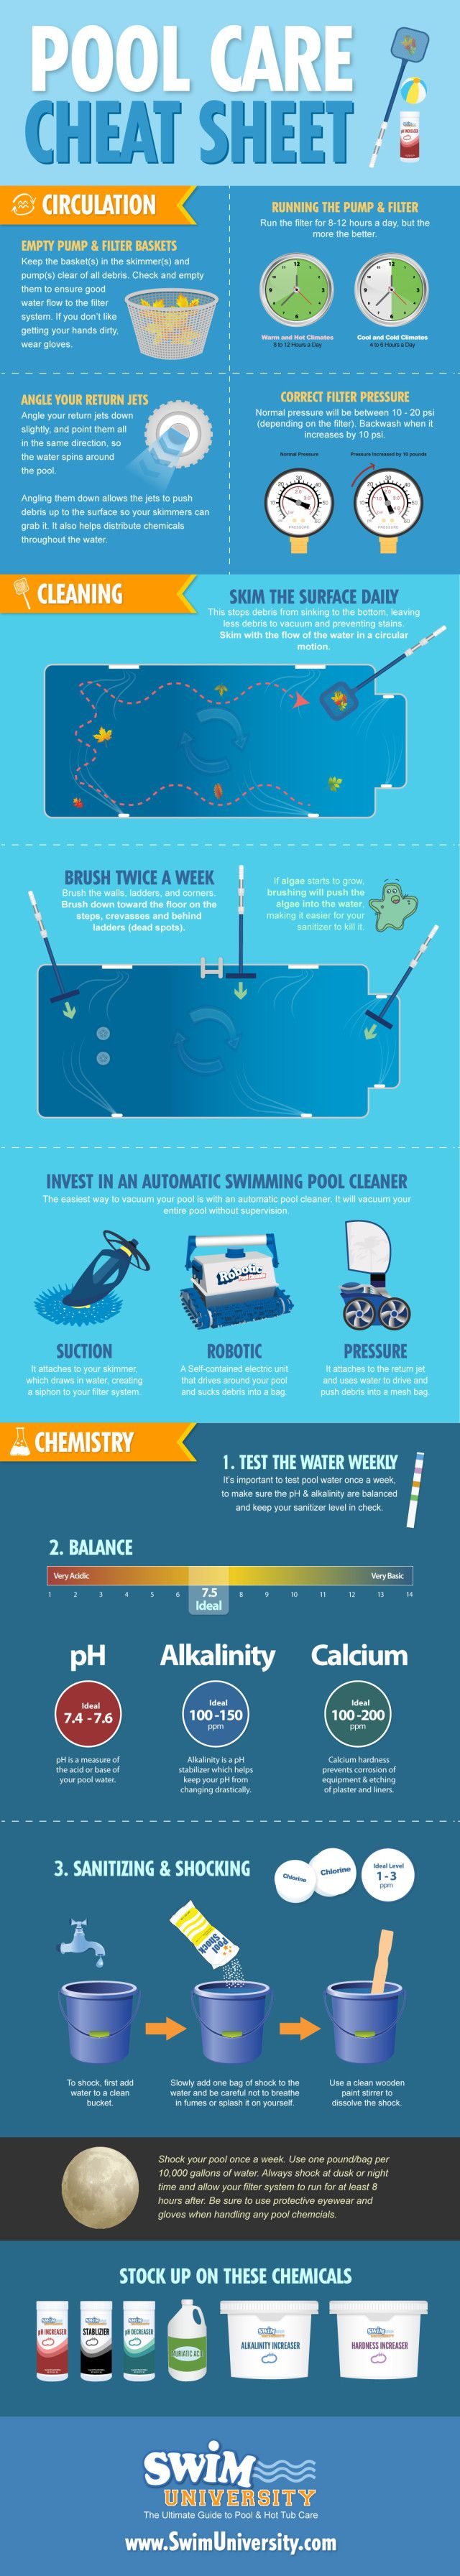 The Pool Care Cheat Sheet Infographic Swimming Pools And Pool Chemicals